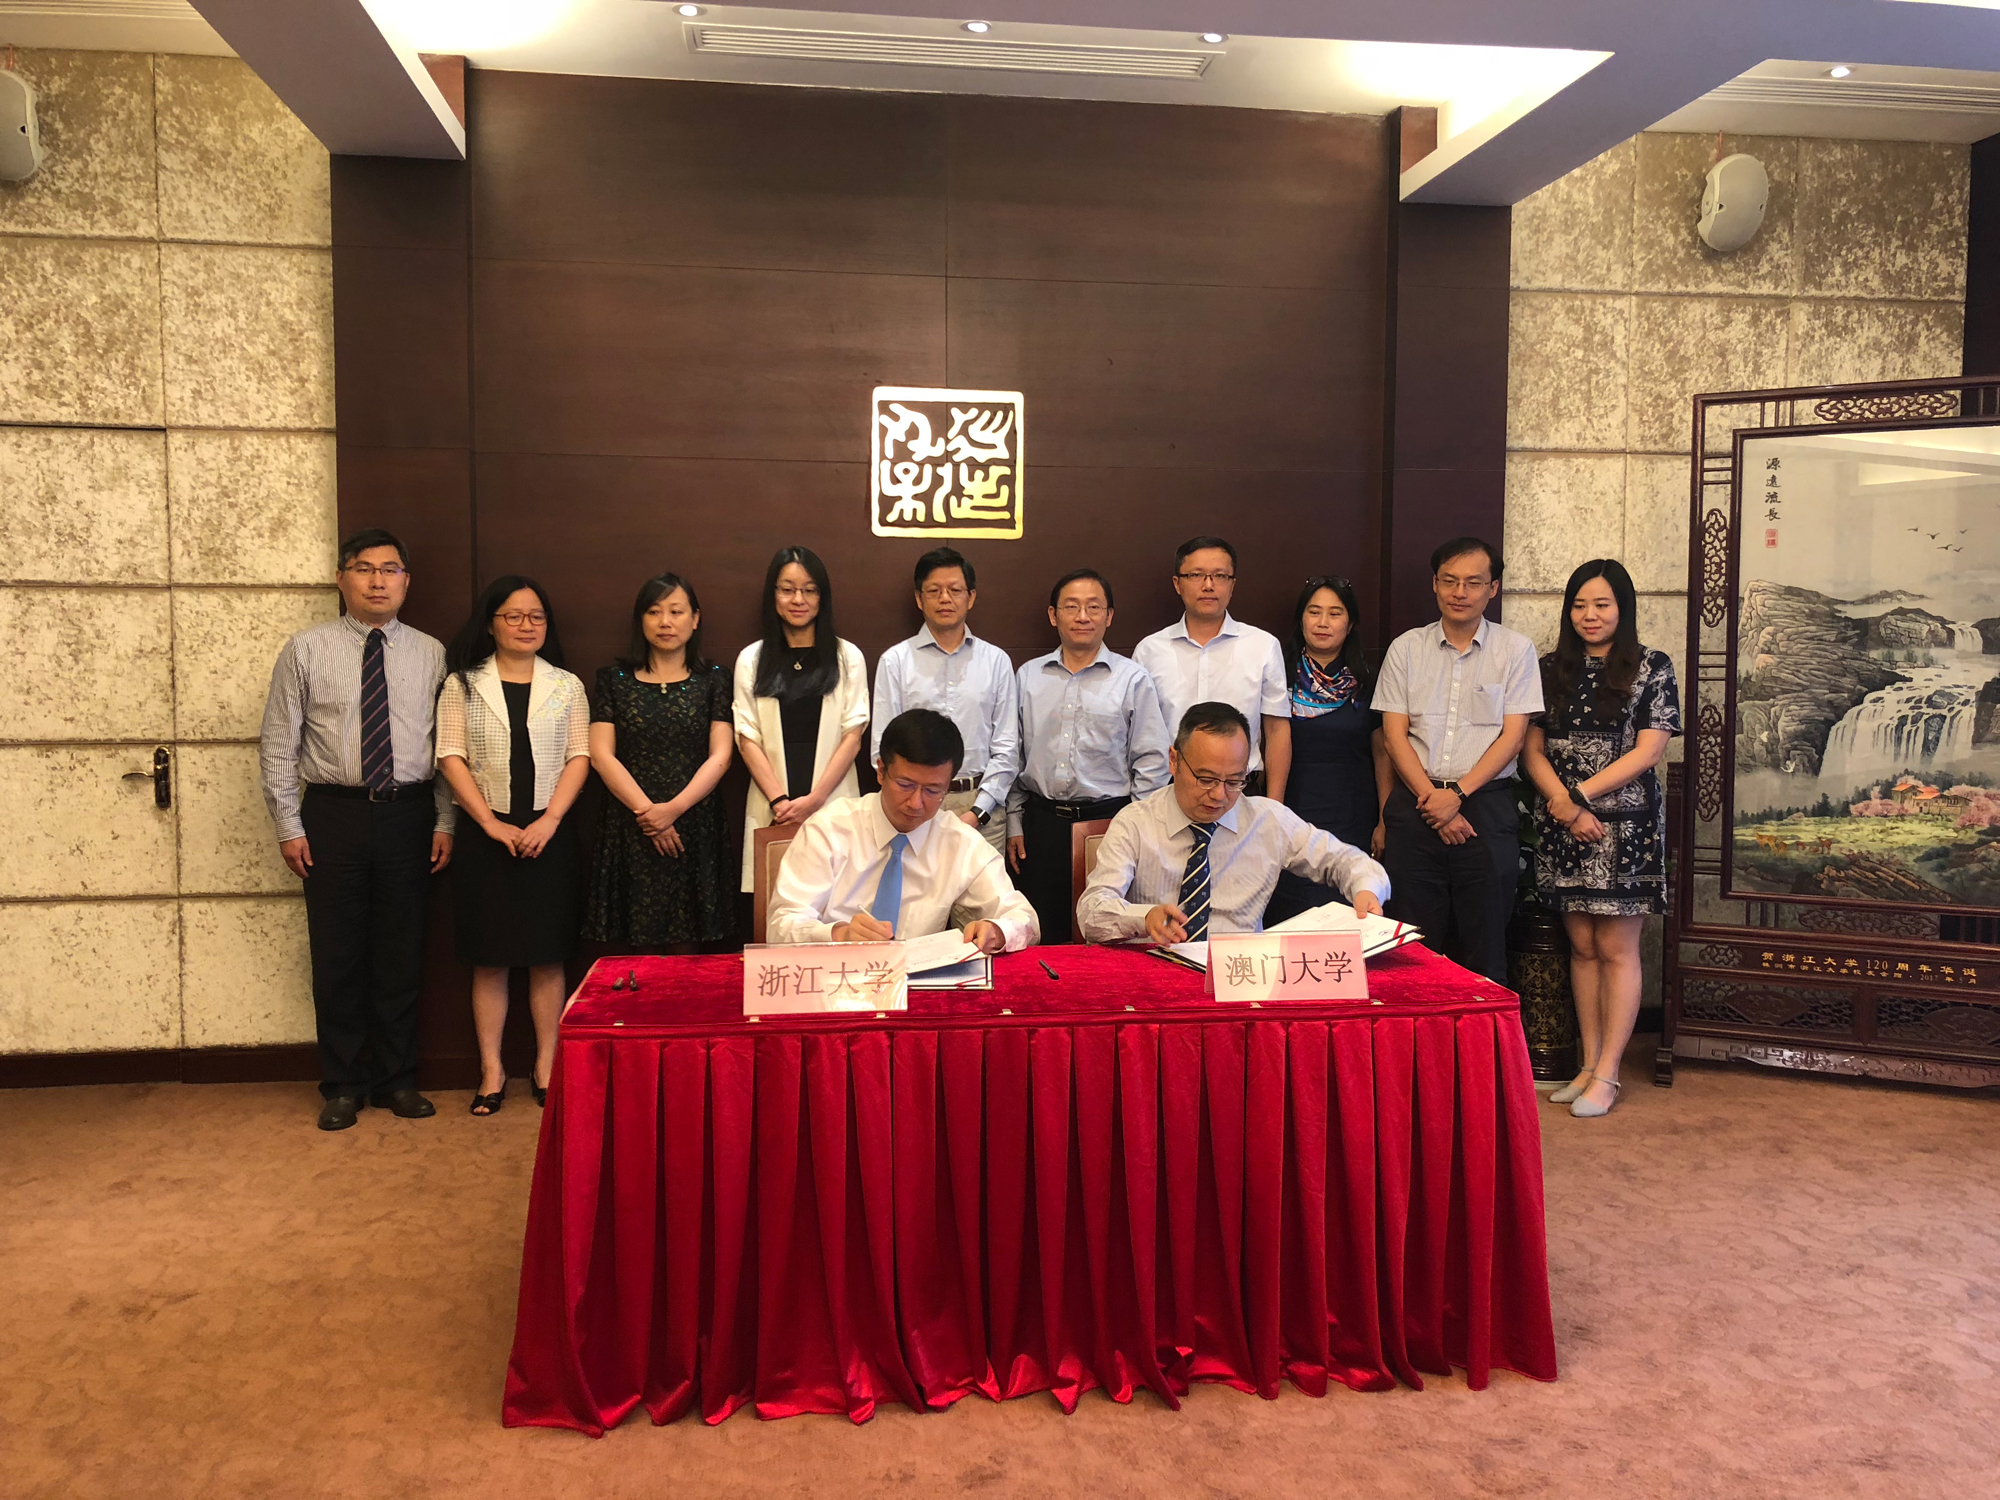 UM and Zhejiang University have signed a collaboration agreement to promote training of high-calibre medical professionals